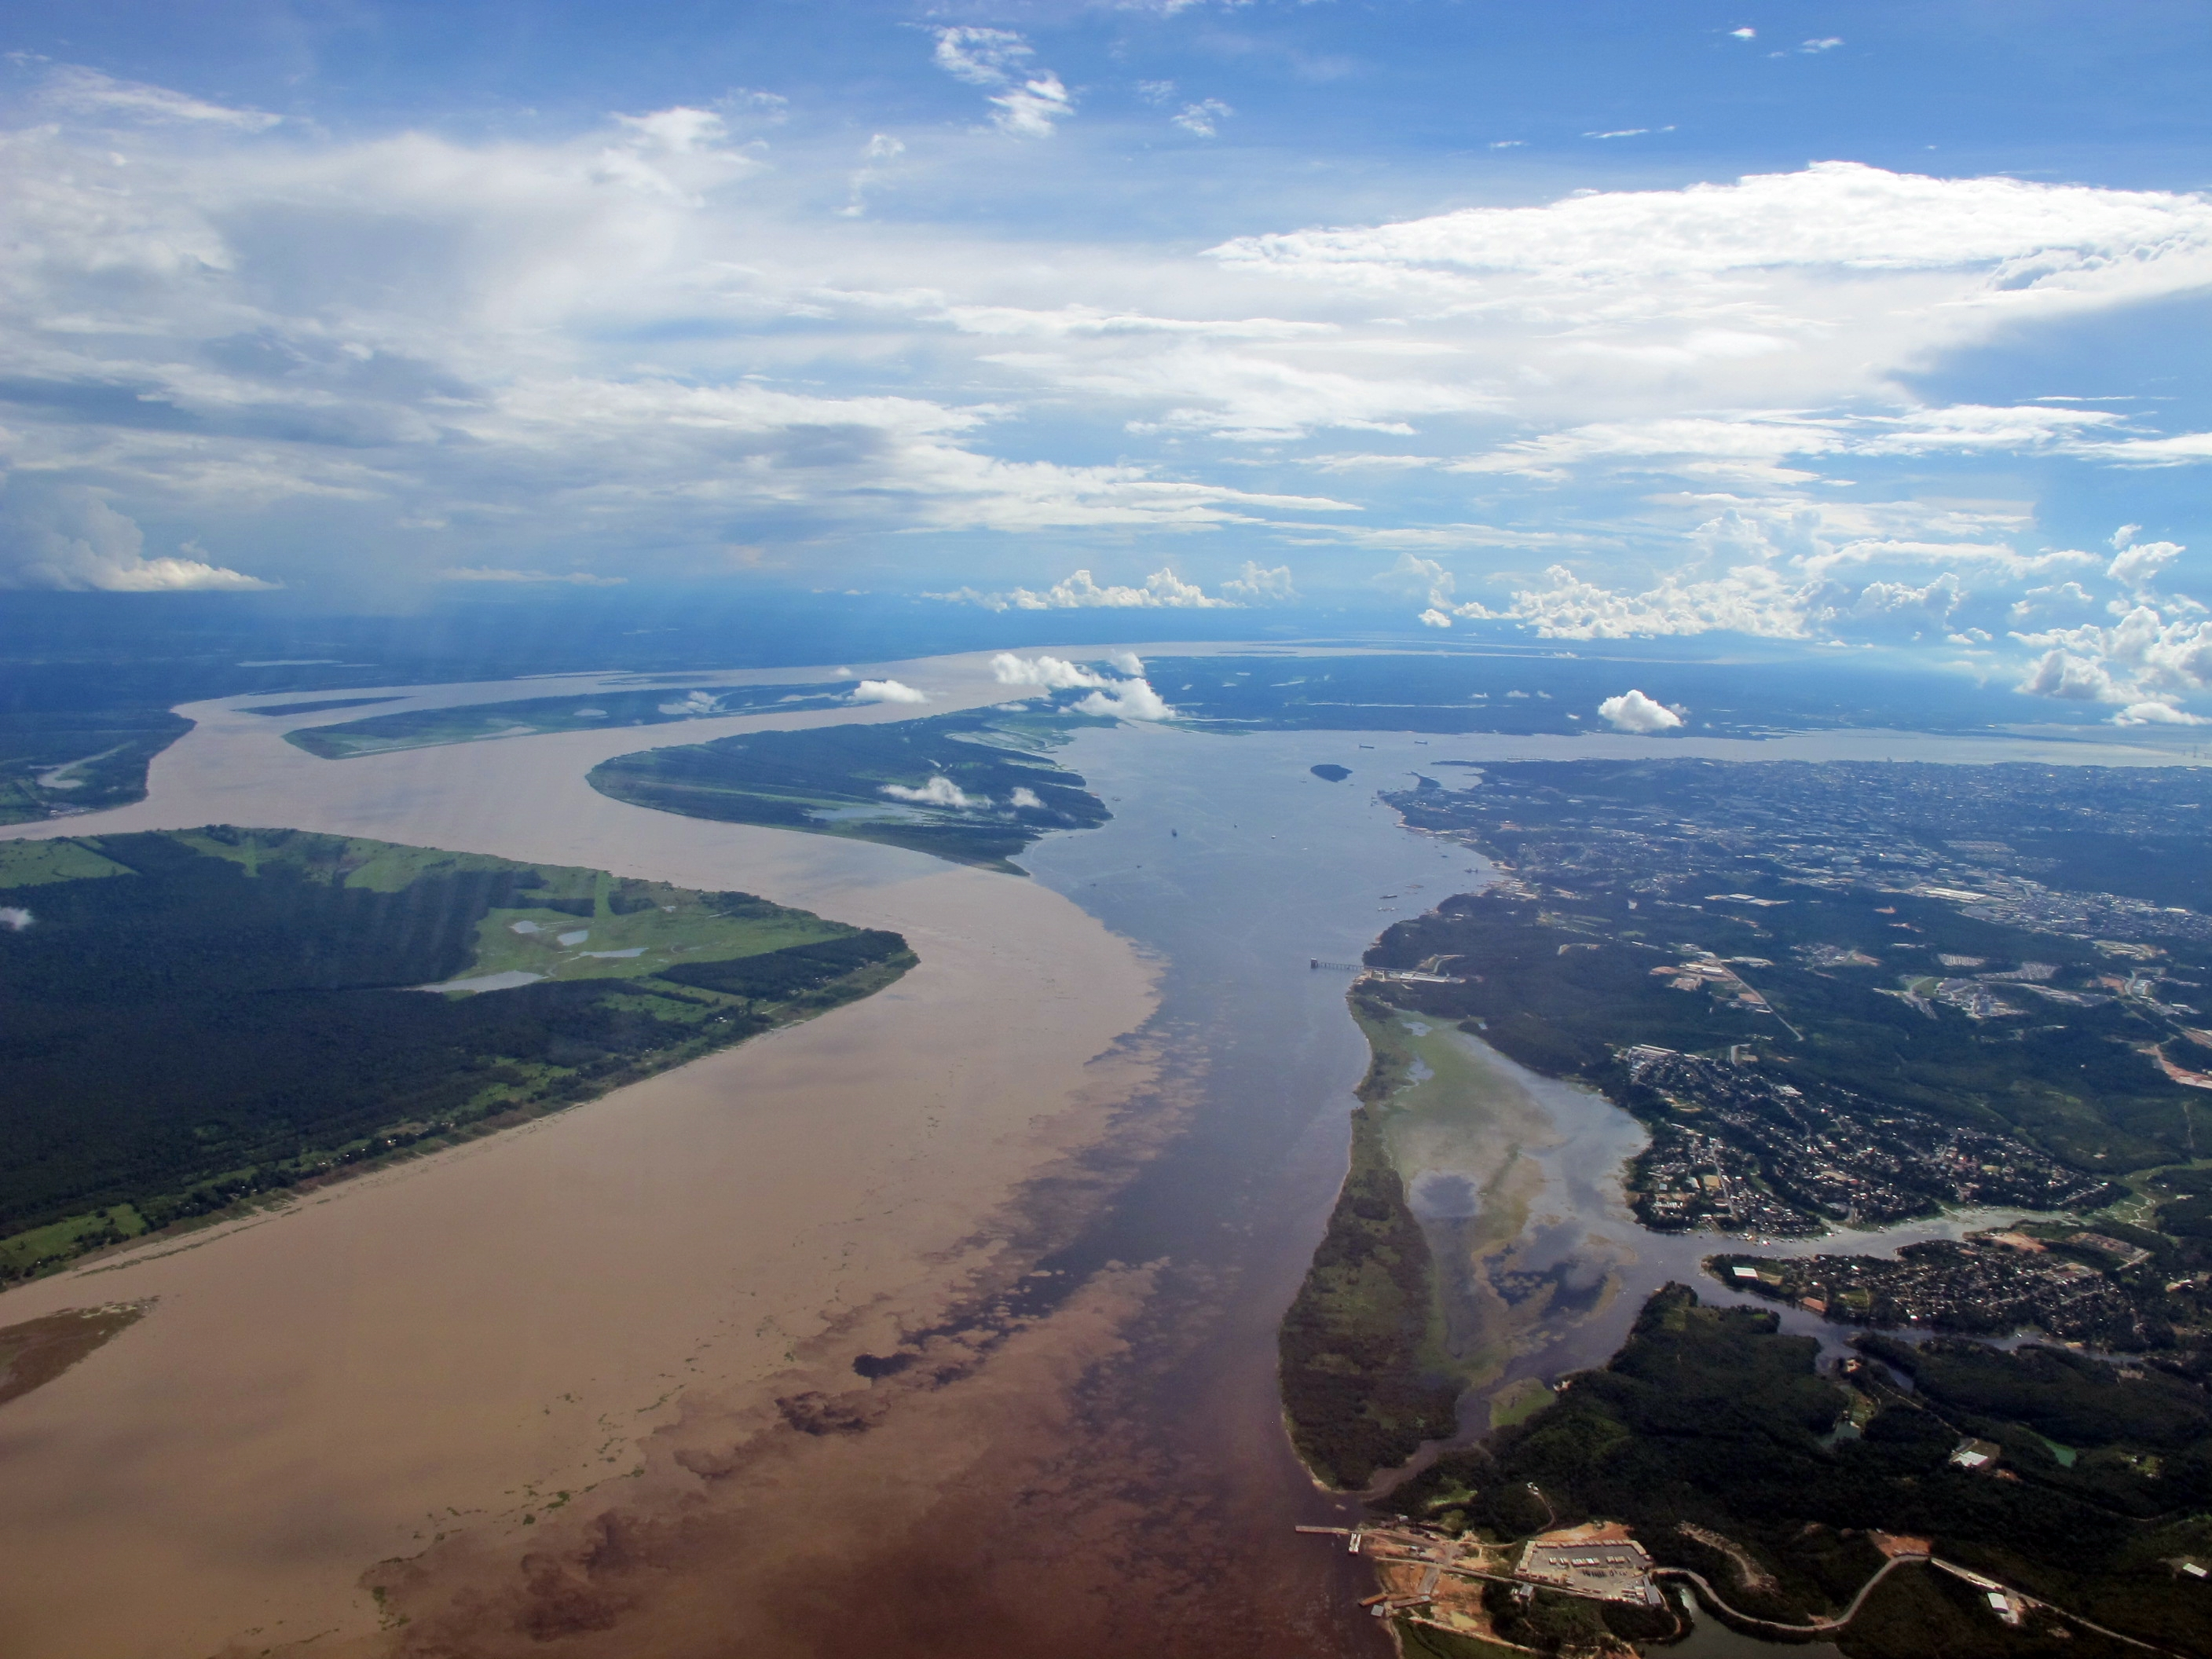 is the capital city of the state of Amazonas in the North Region of Brazil. It is situated near the confluence of the Negro and Solimões rivers.